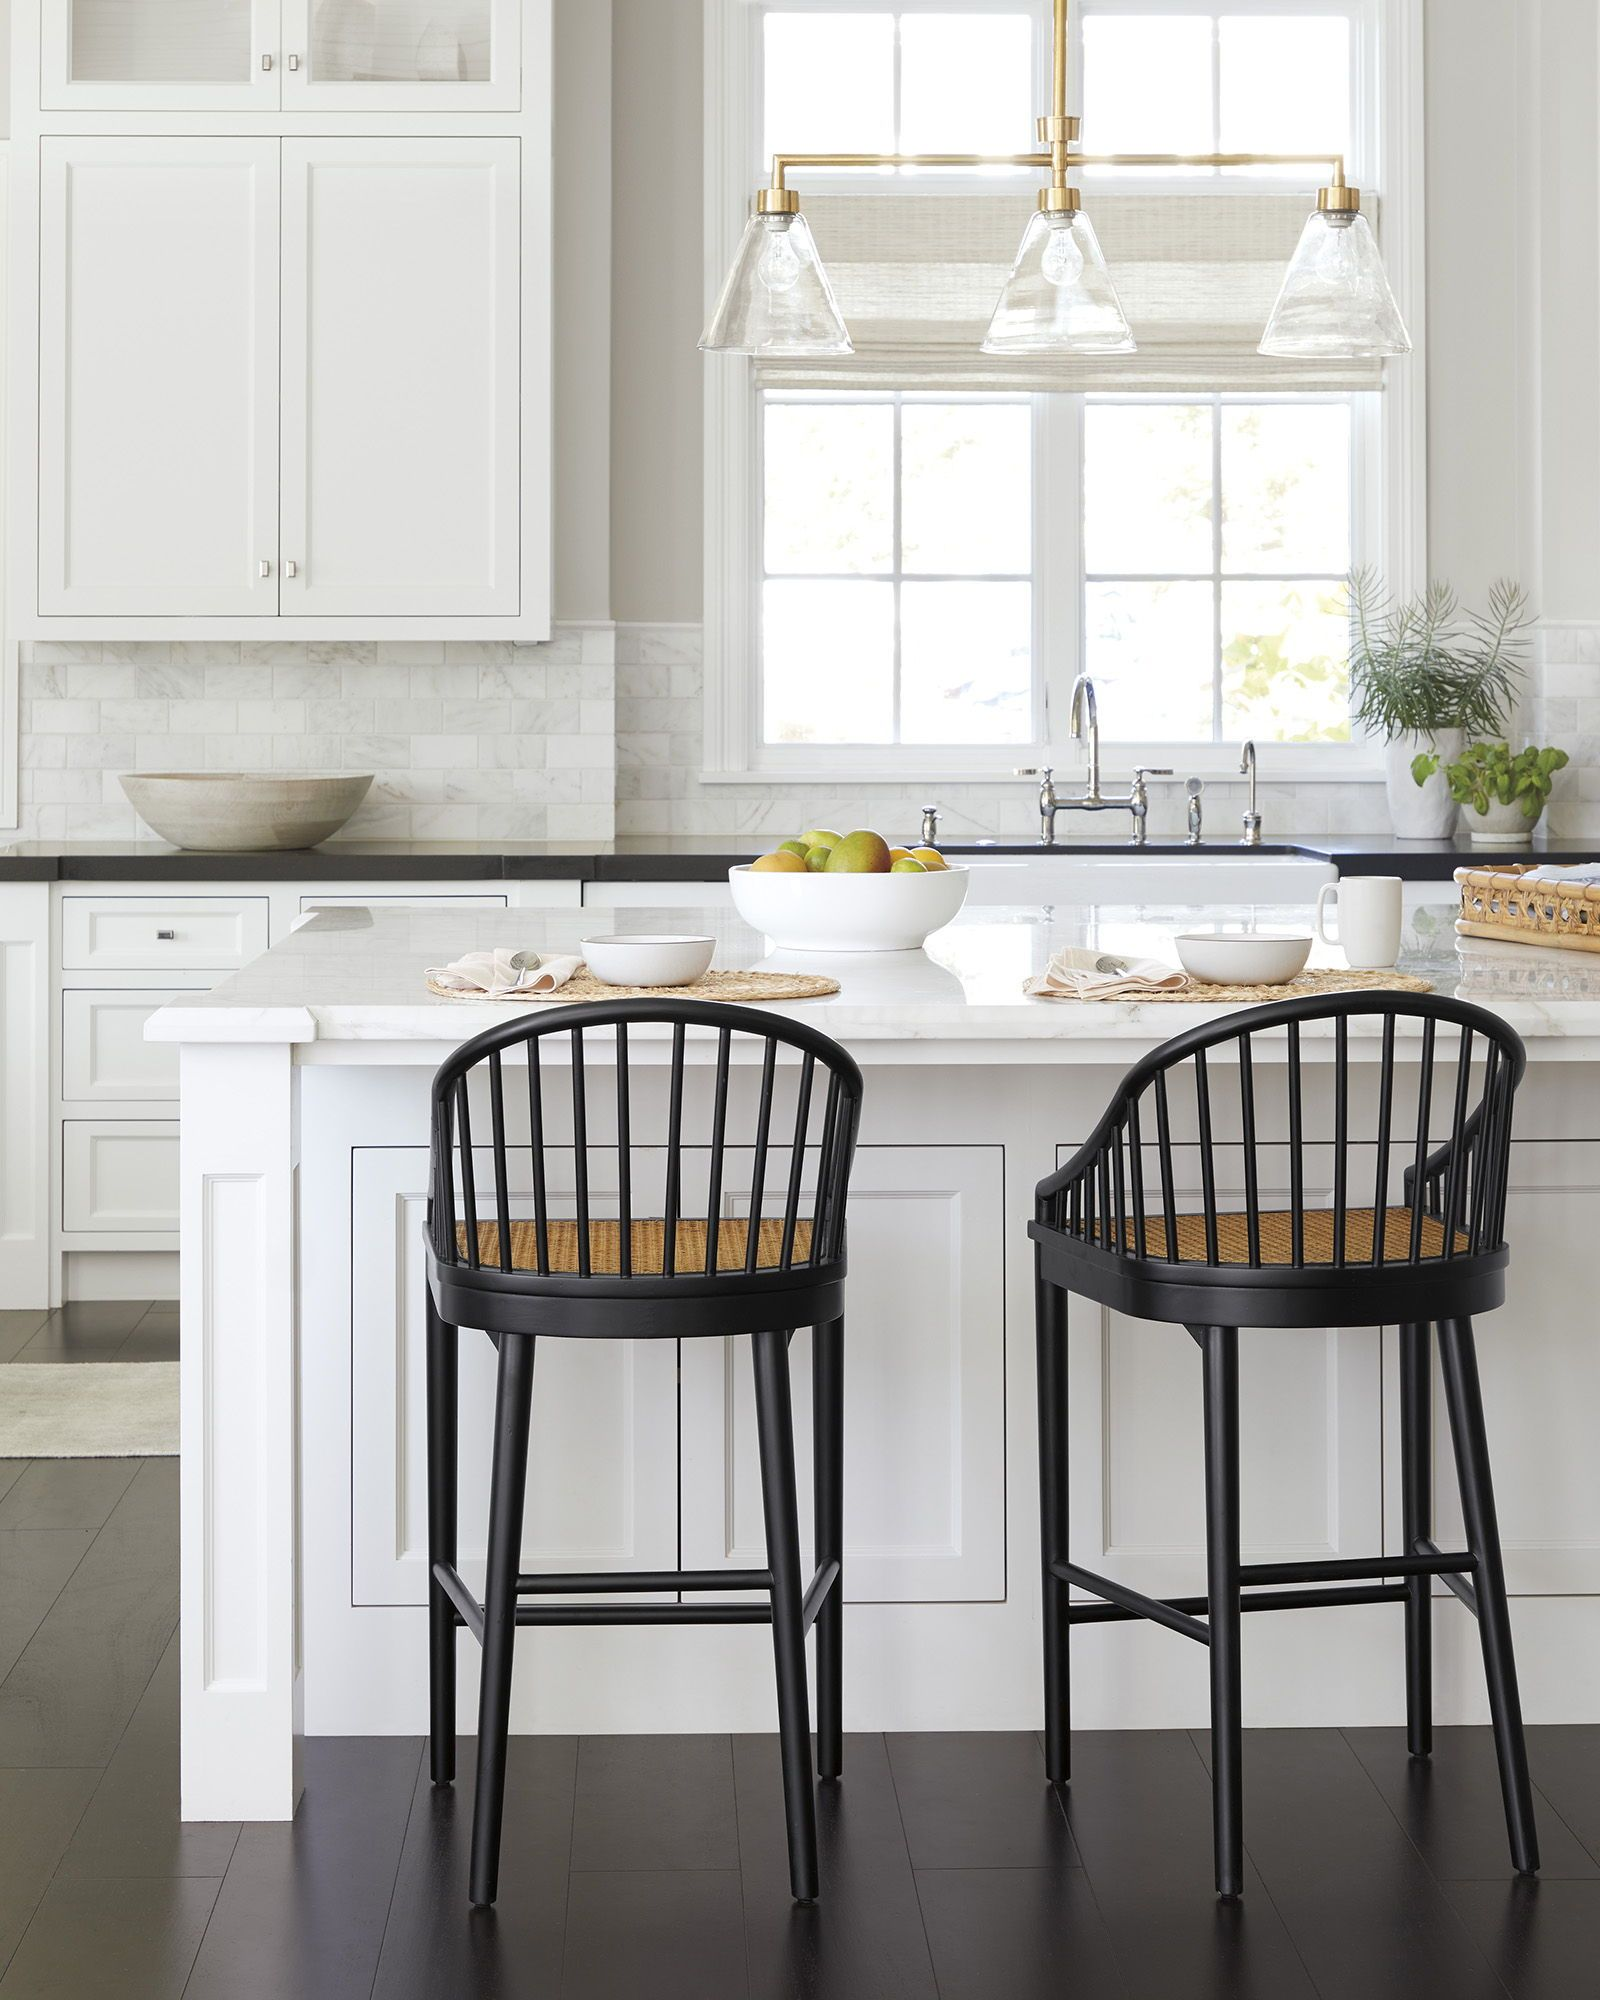 Modern Black Counter Stools Add A Special Touch This This All White Kitchen In 2020 Counter Stools Pretty Kitchen Home Remodeling